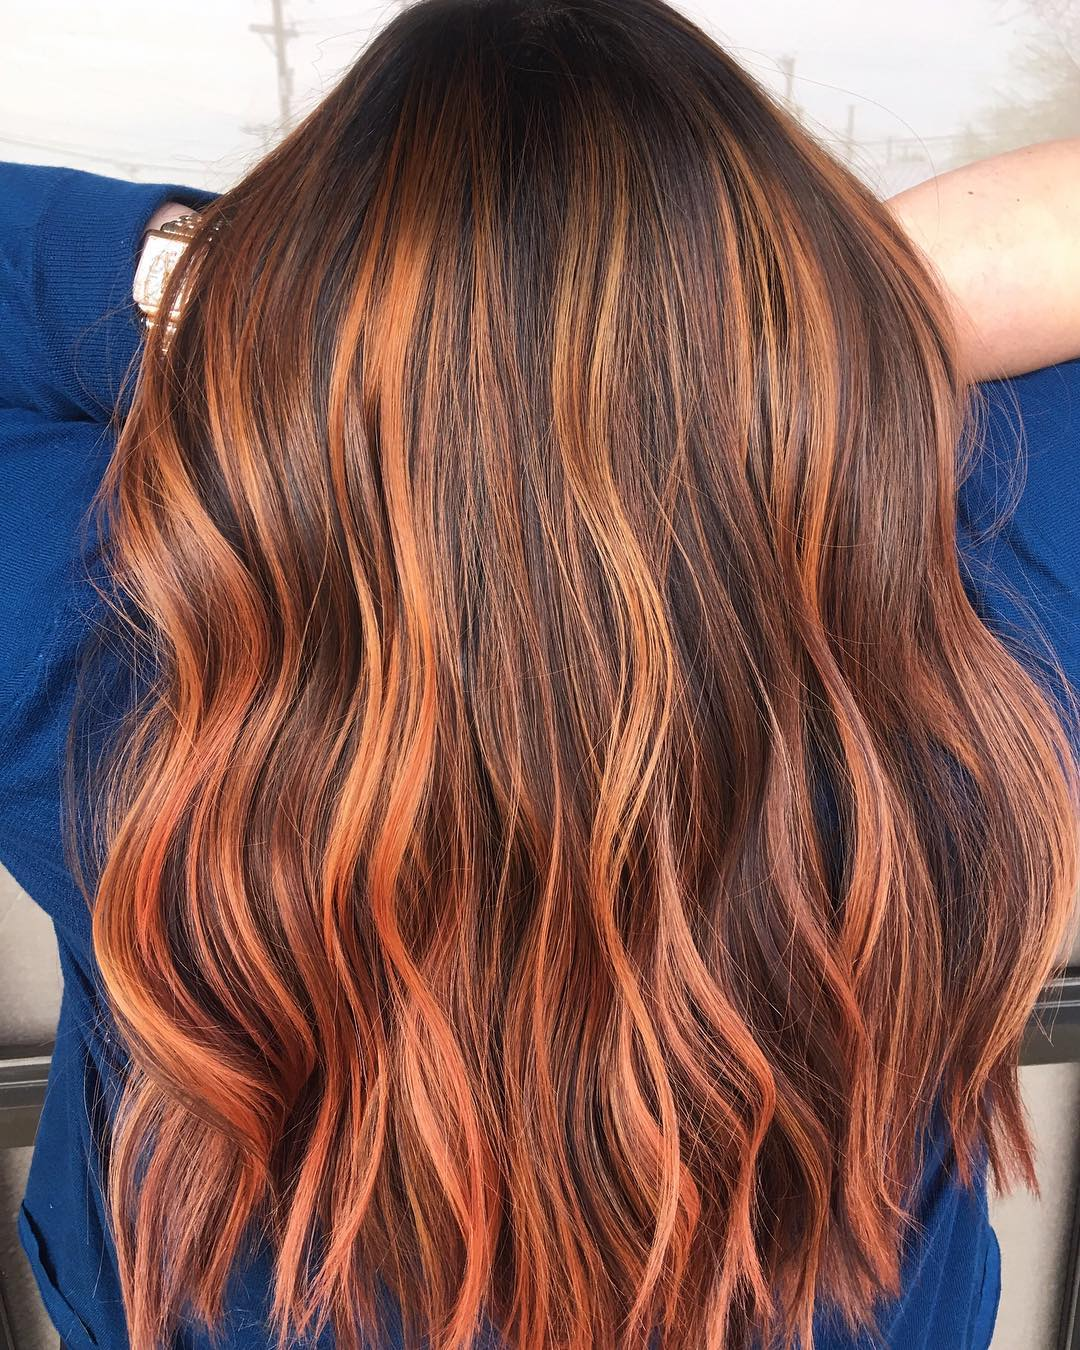 Brown Hair with Tangerine Highlights